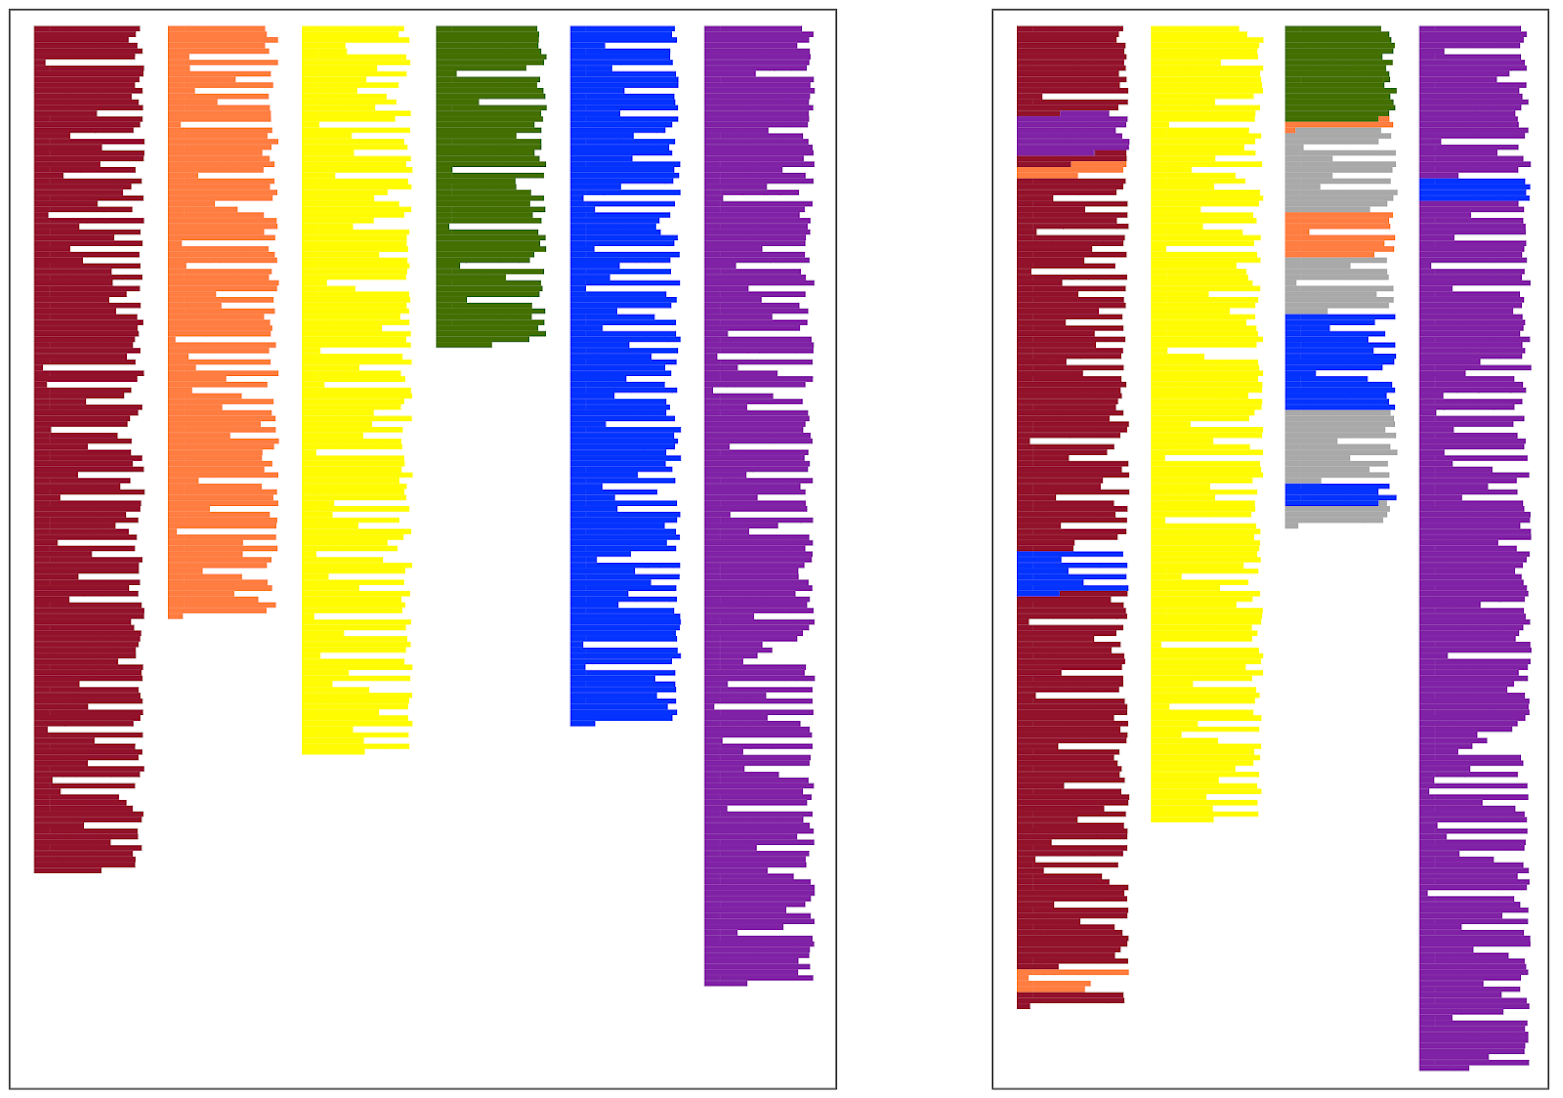 Colorful visualization of a restructured chapter